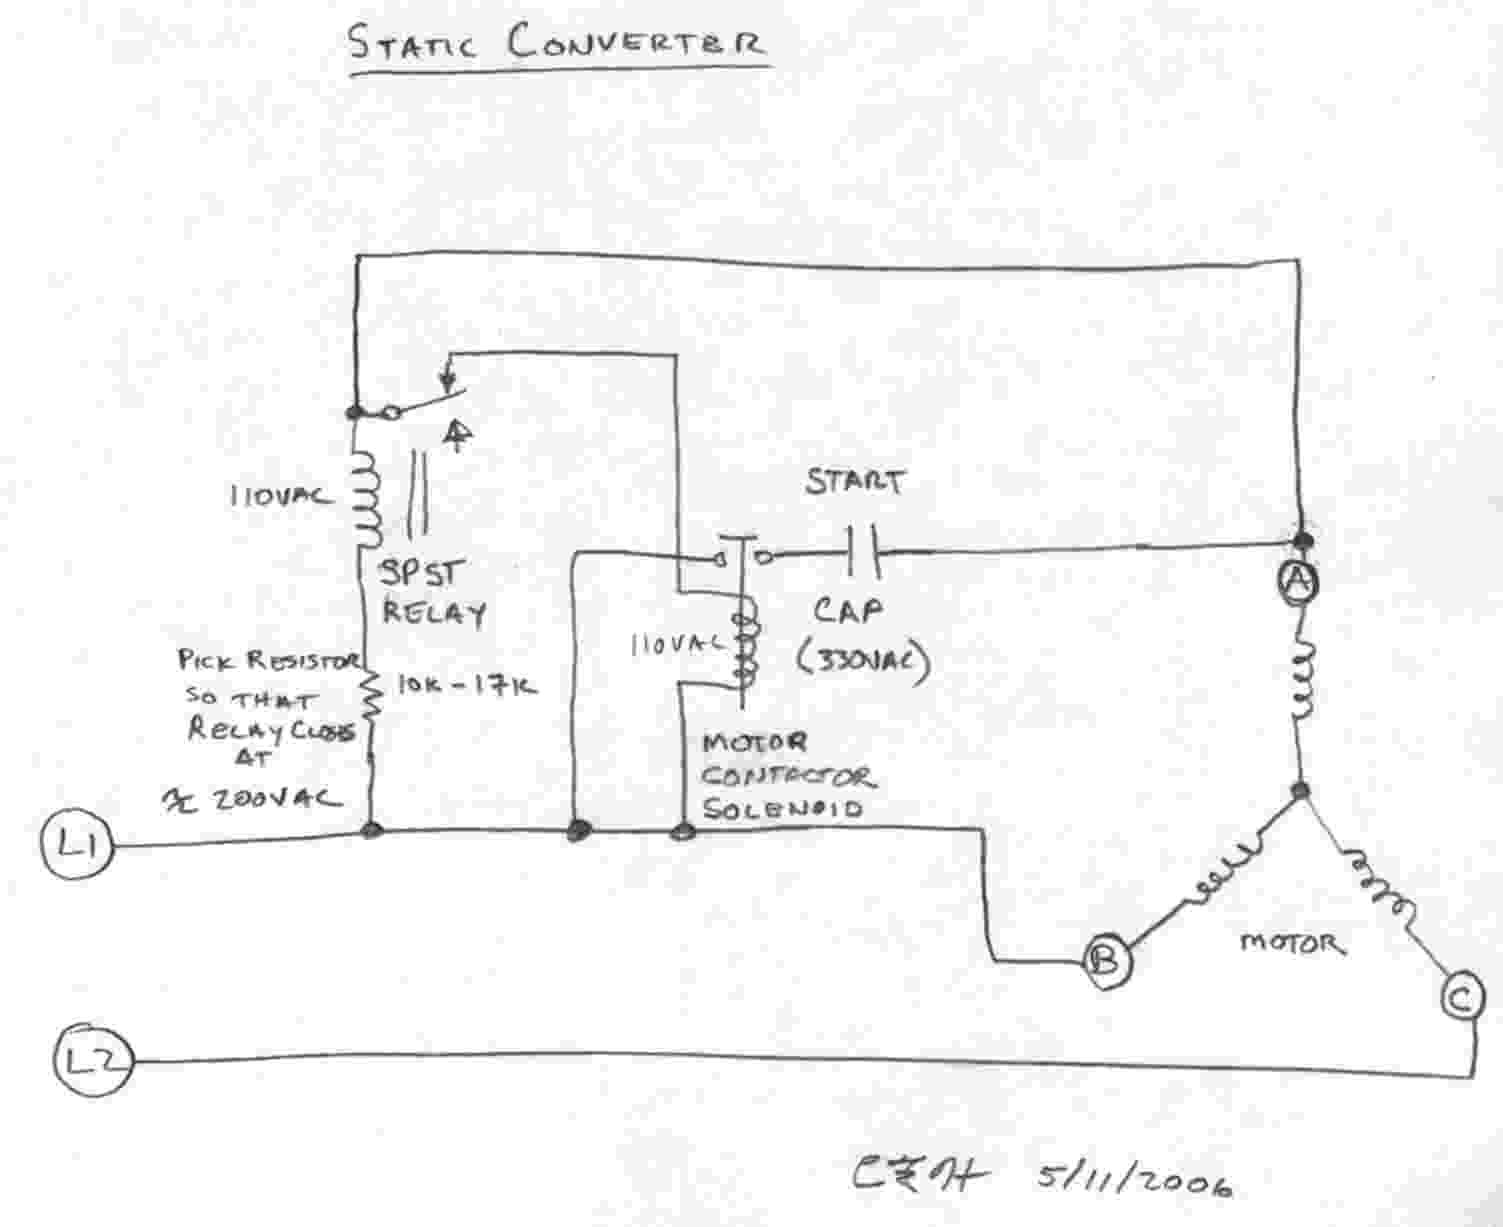 hight resolution of static converter schematic